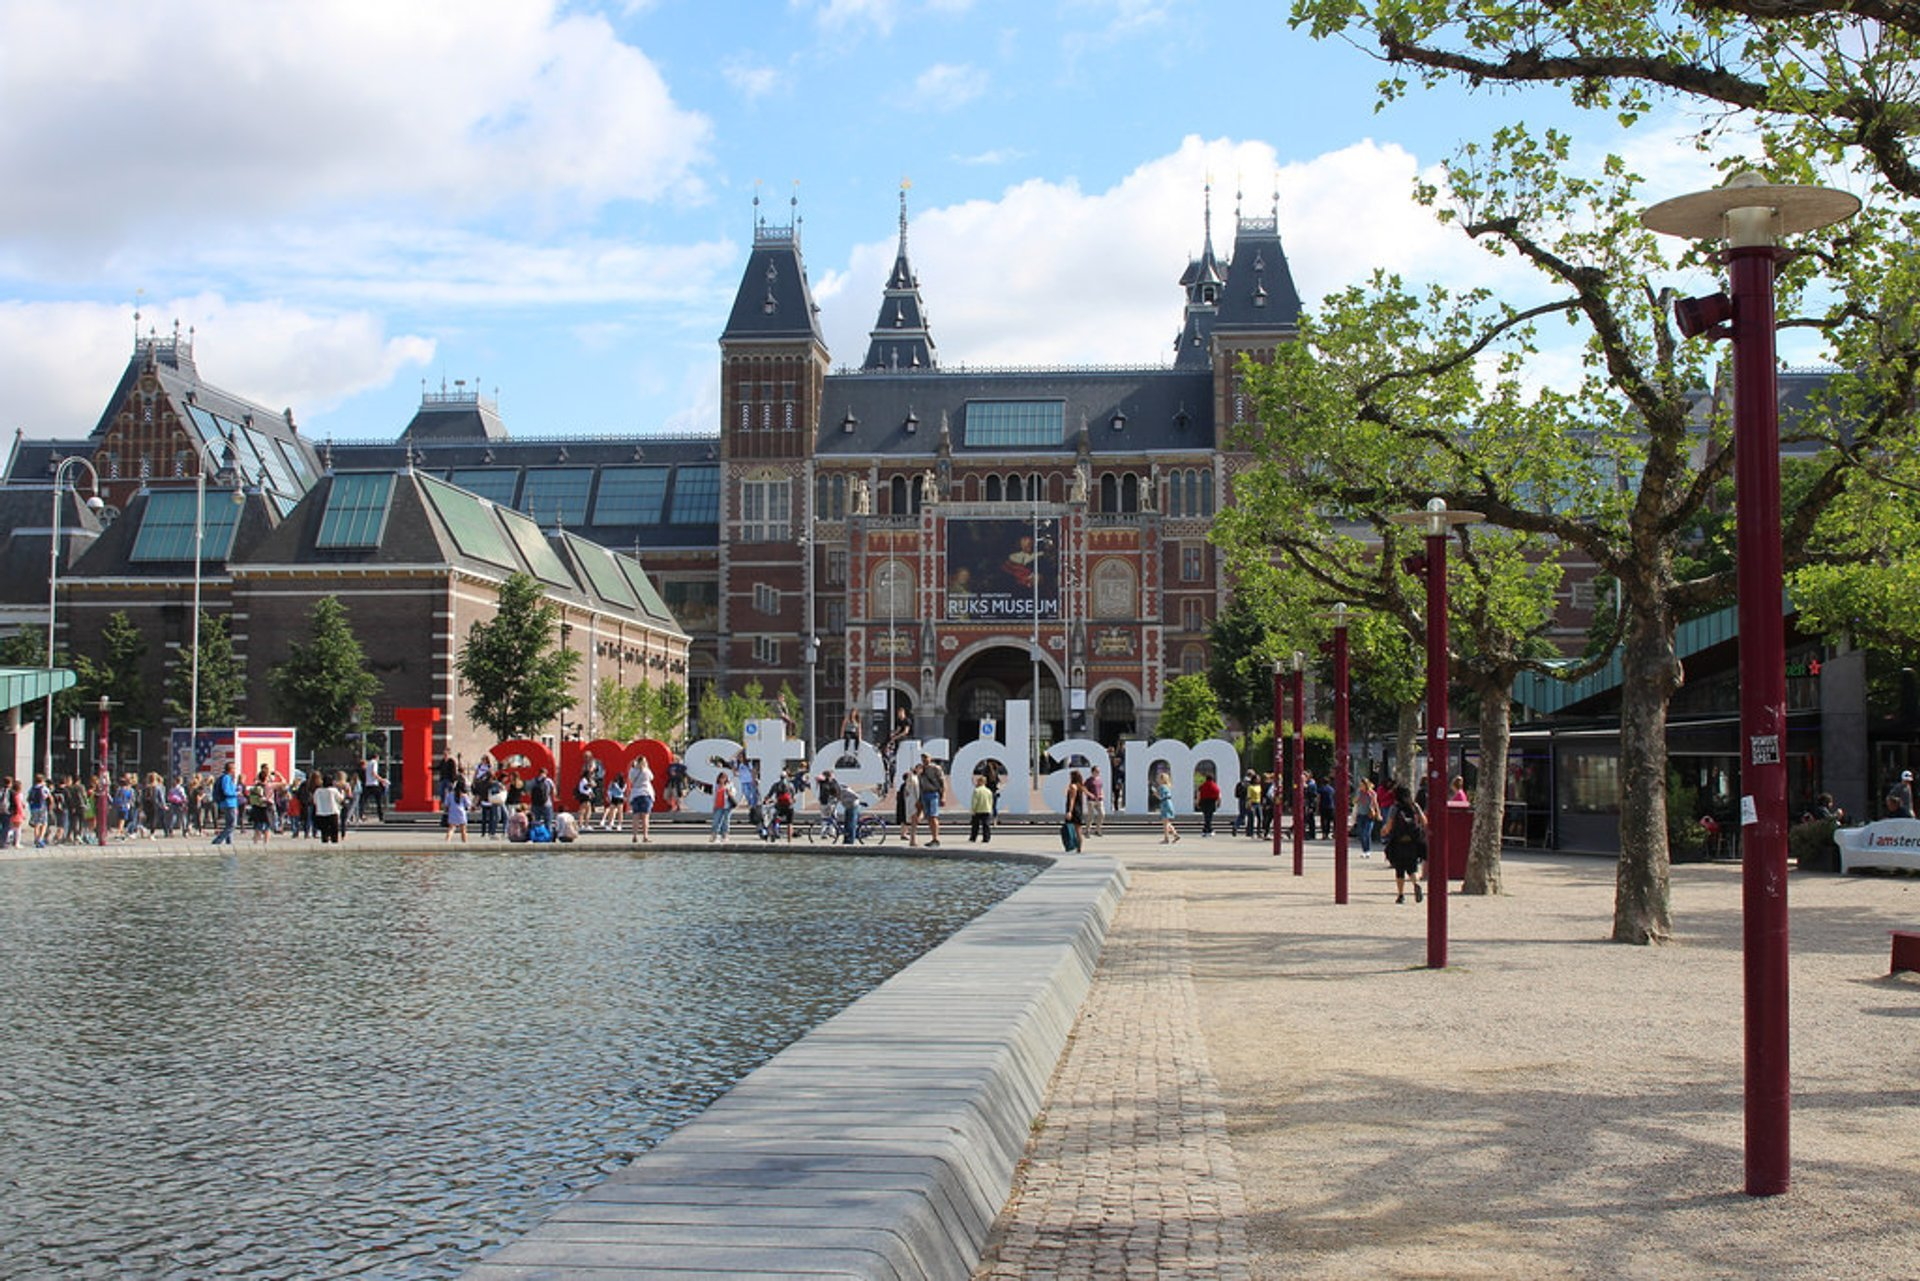 Rijksmuseum in Amsterdam 2020 - Best Time